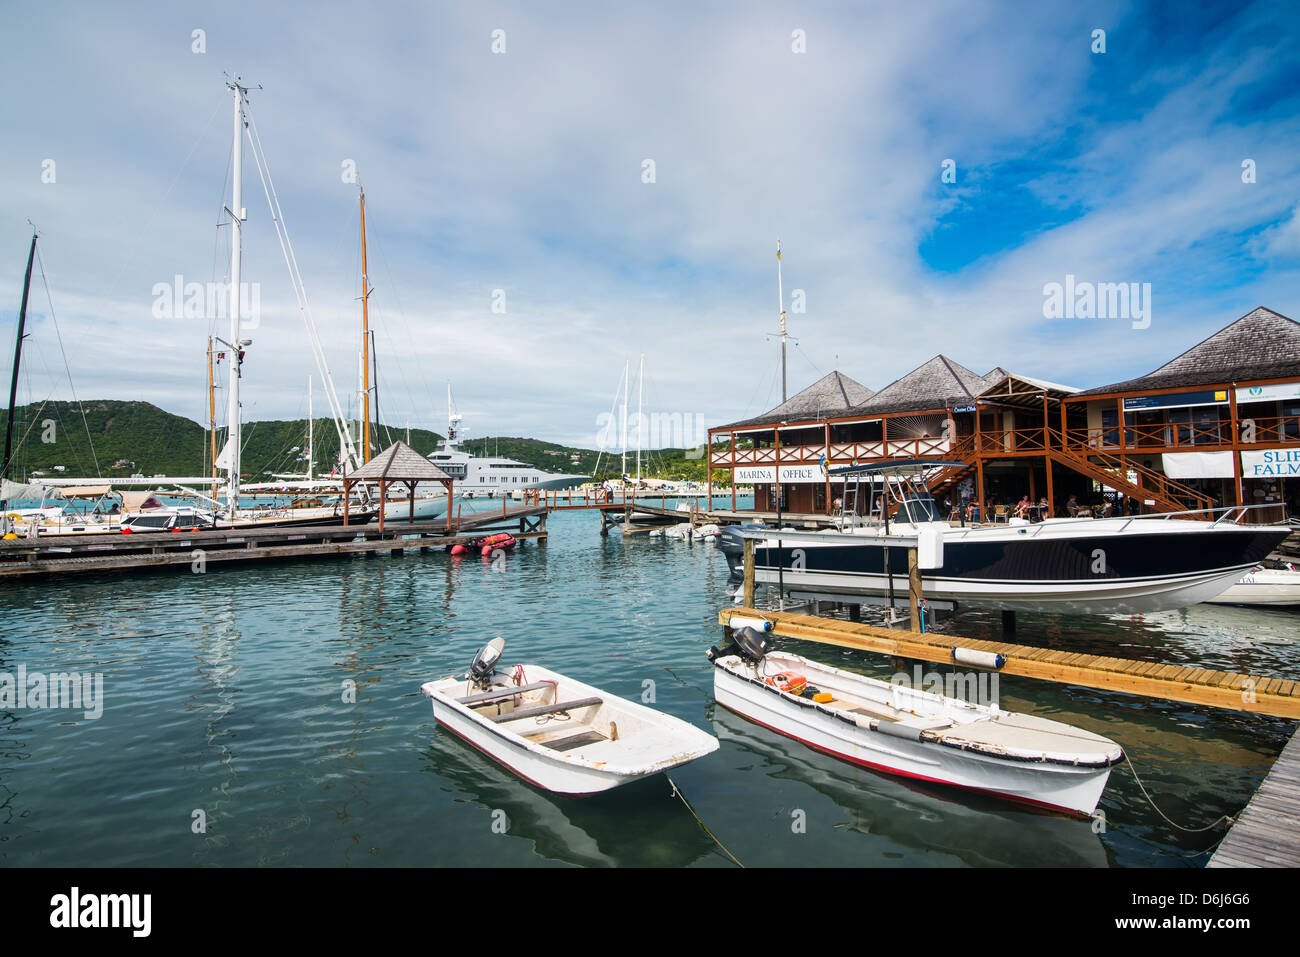 Sailing boats in the Falmouth Harbour, Antigua, Antigua and Barbuda, West Indies, Caribbean, Central America - Stock Image